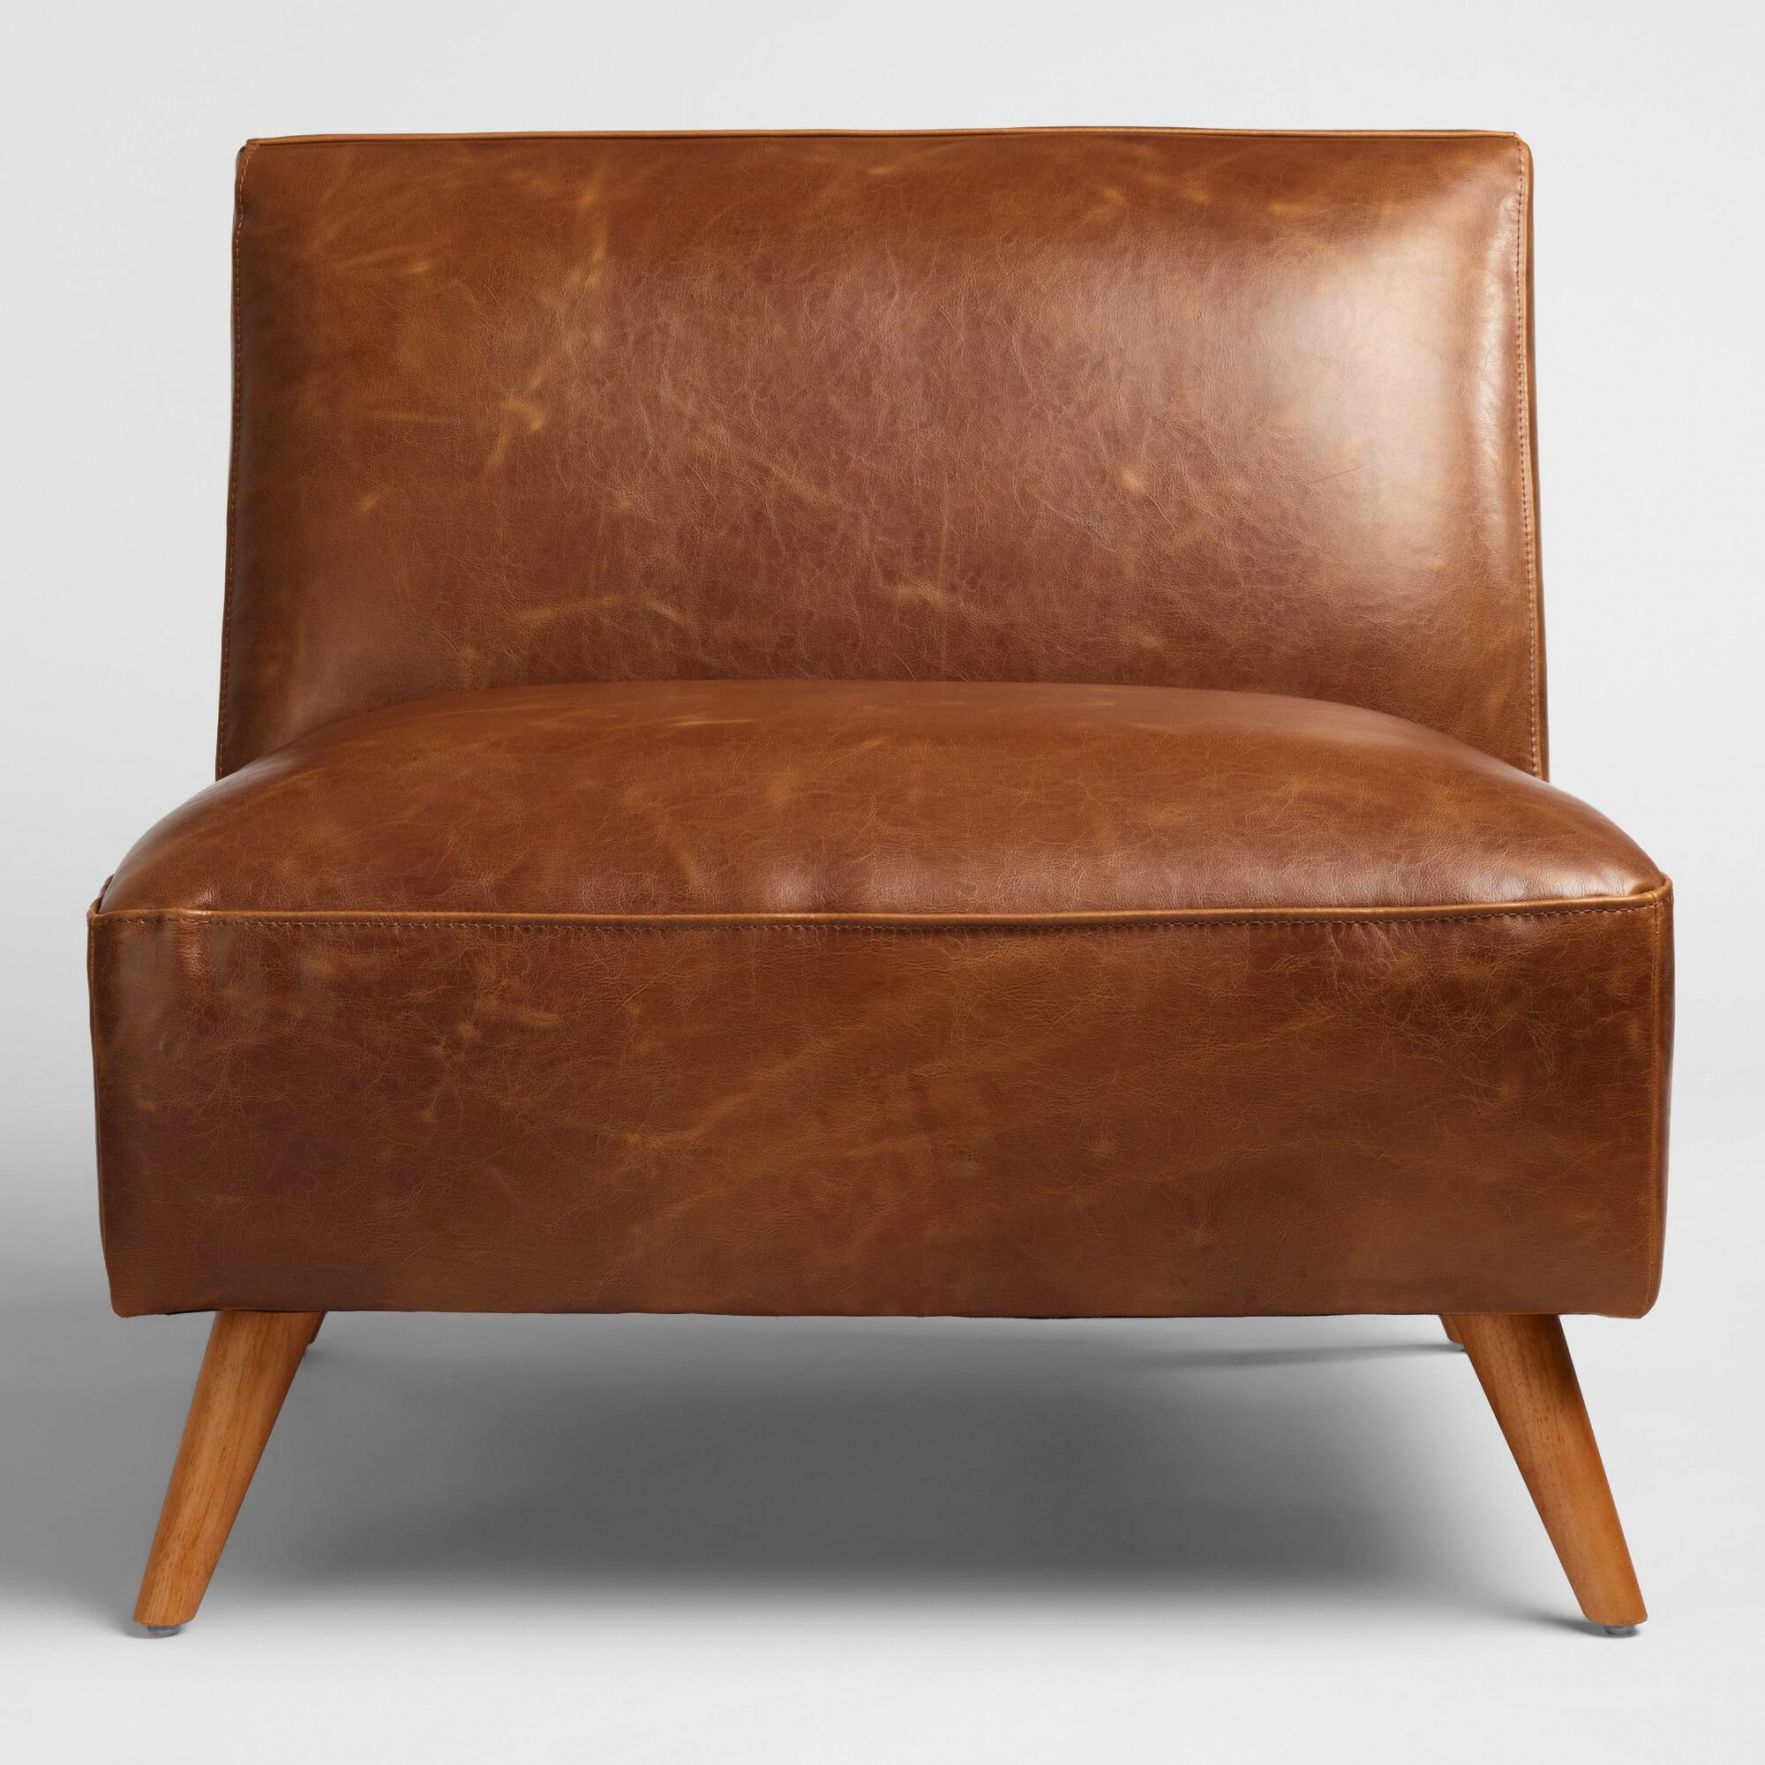 World Market Brown Leather Chair Best Bedroom Furniture Check - World market bedroom furniture